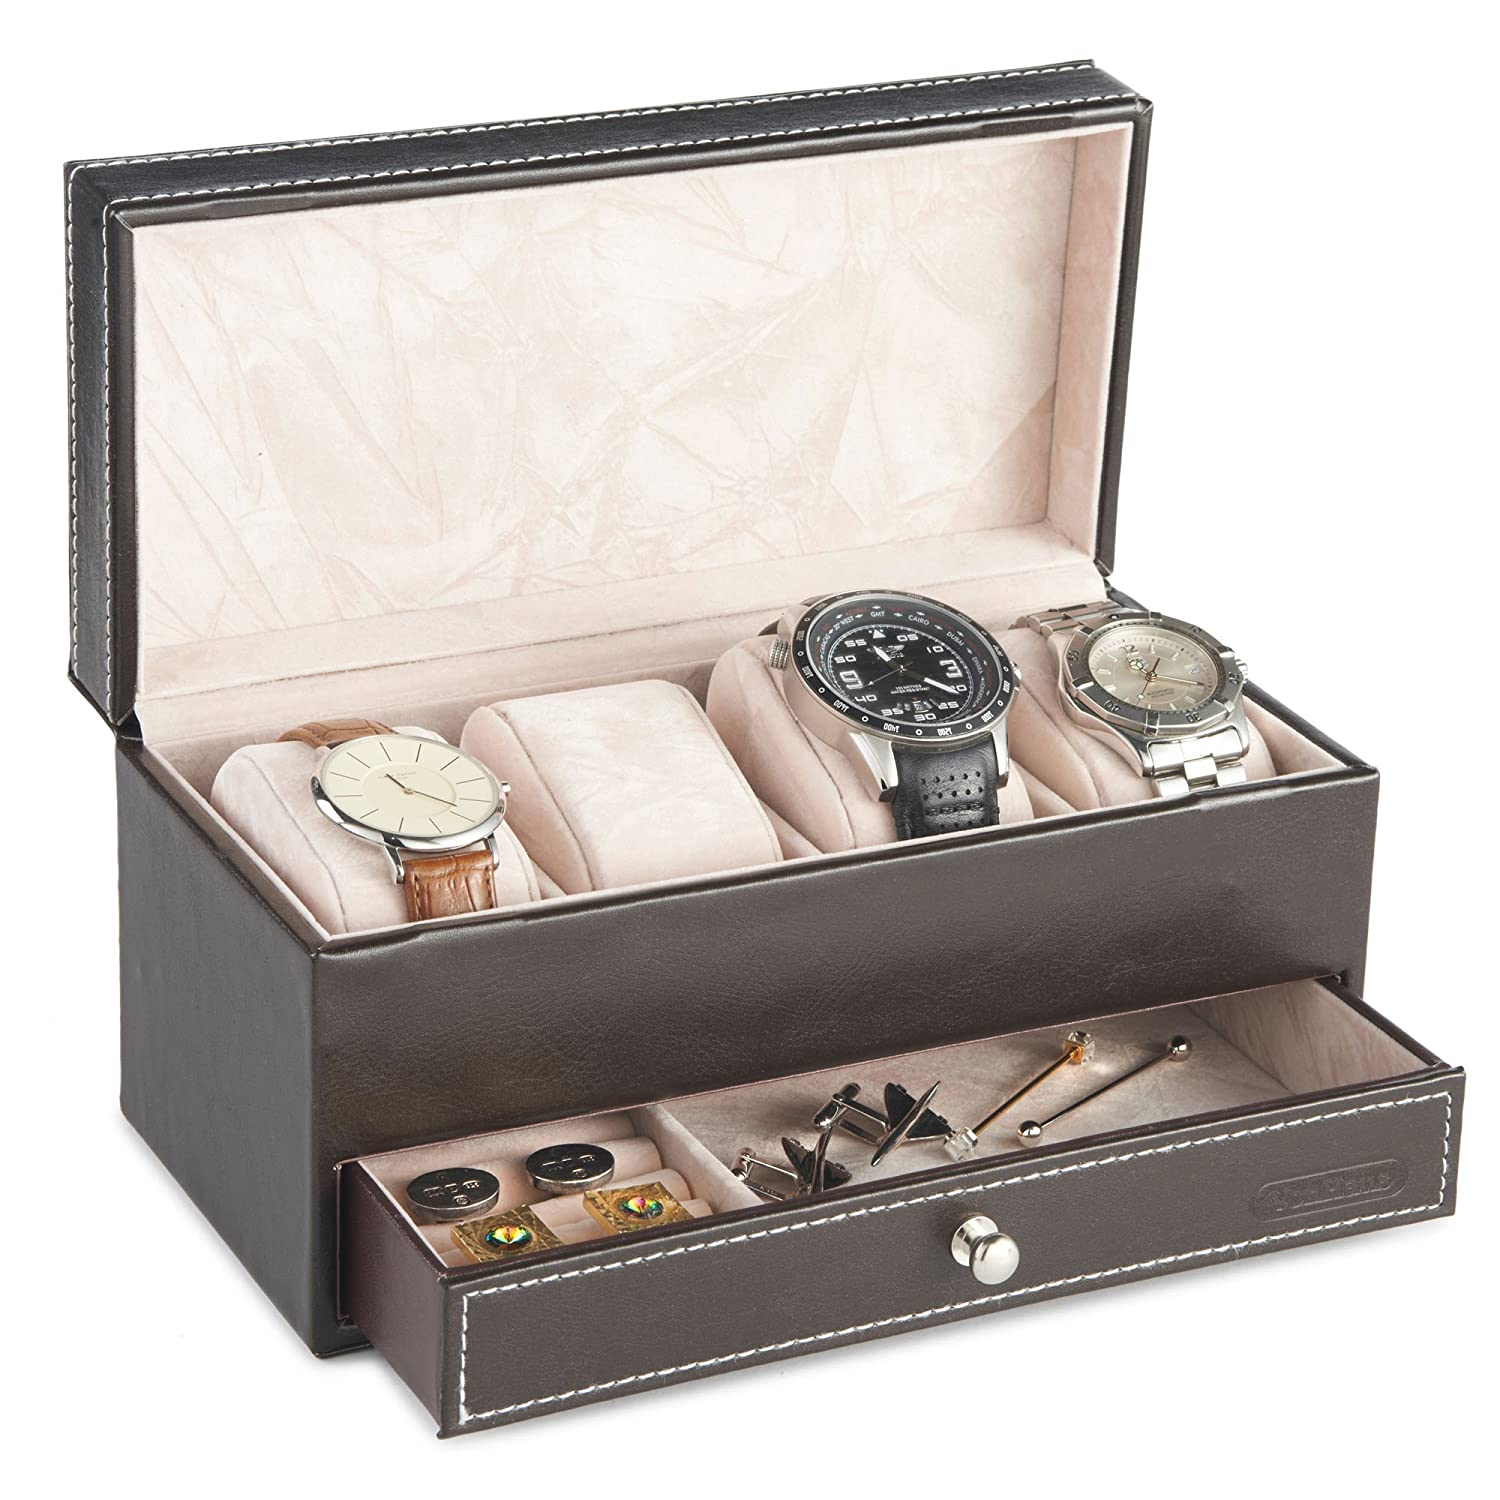 VonHaus 4 Watch And Cufflink Display Box With Drawer | Brown Faux Leather:  Amazon.co.uk: Watches